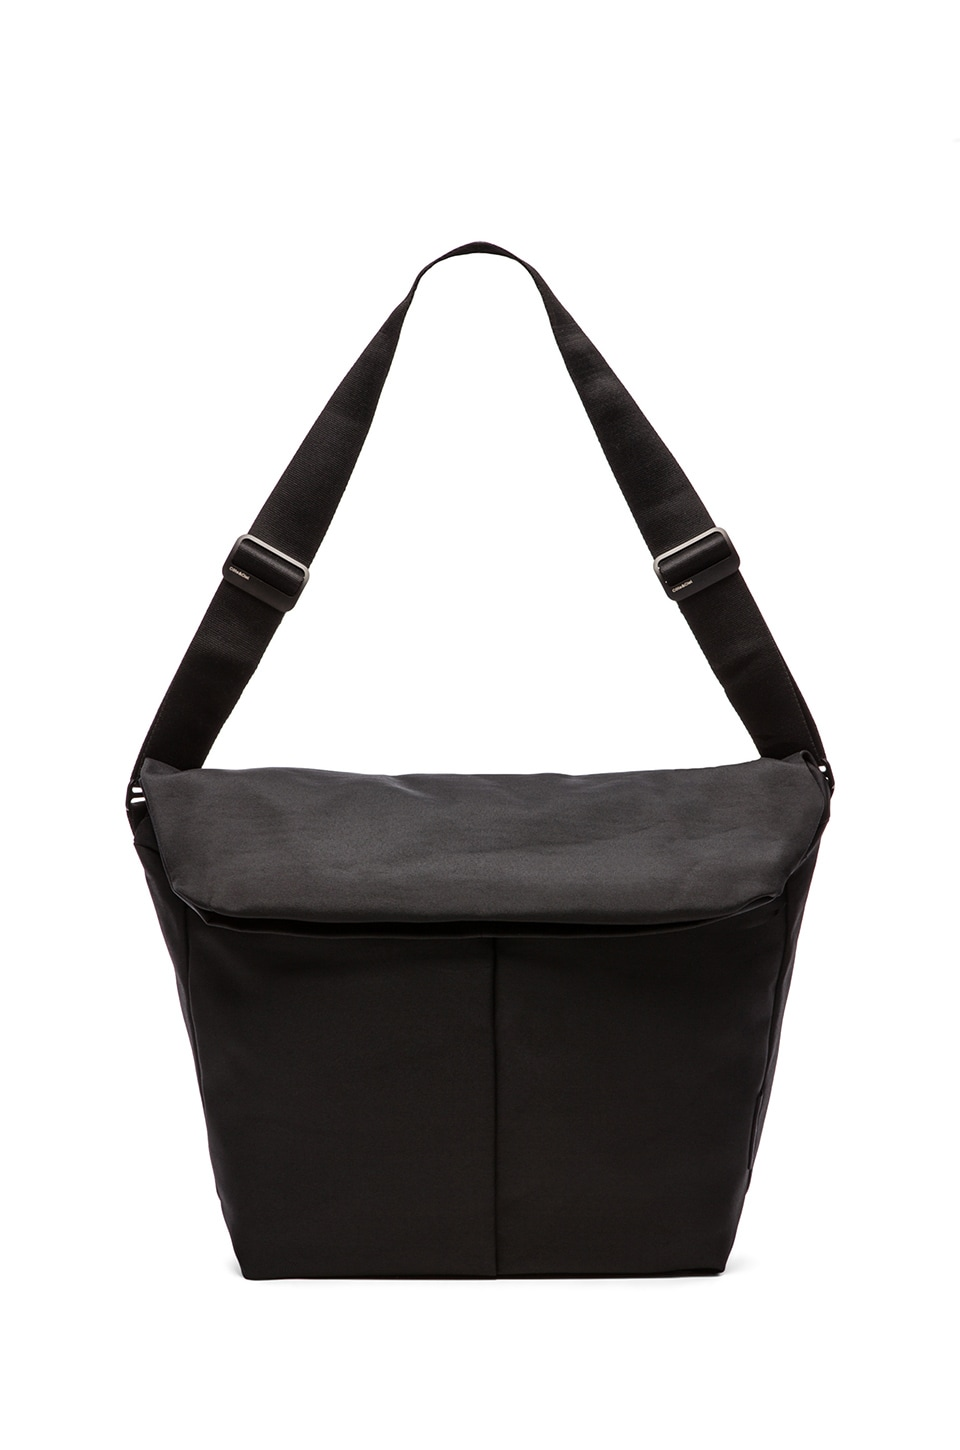 Cote & Ciel Spree Messenger Bag in Black